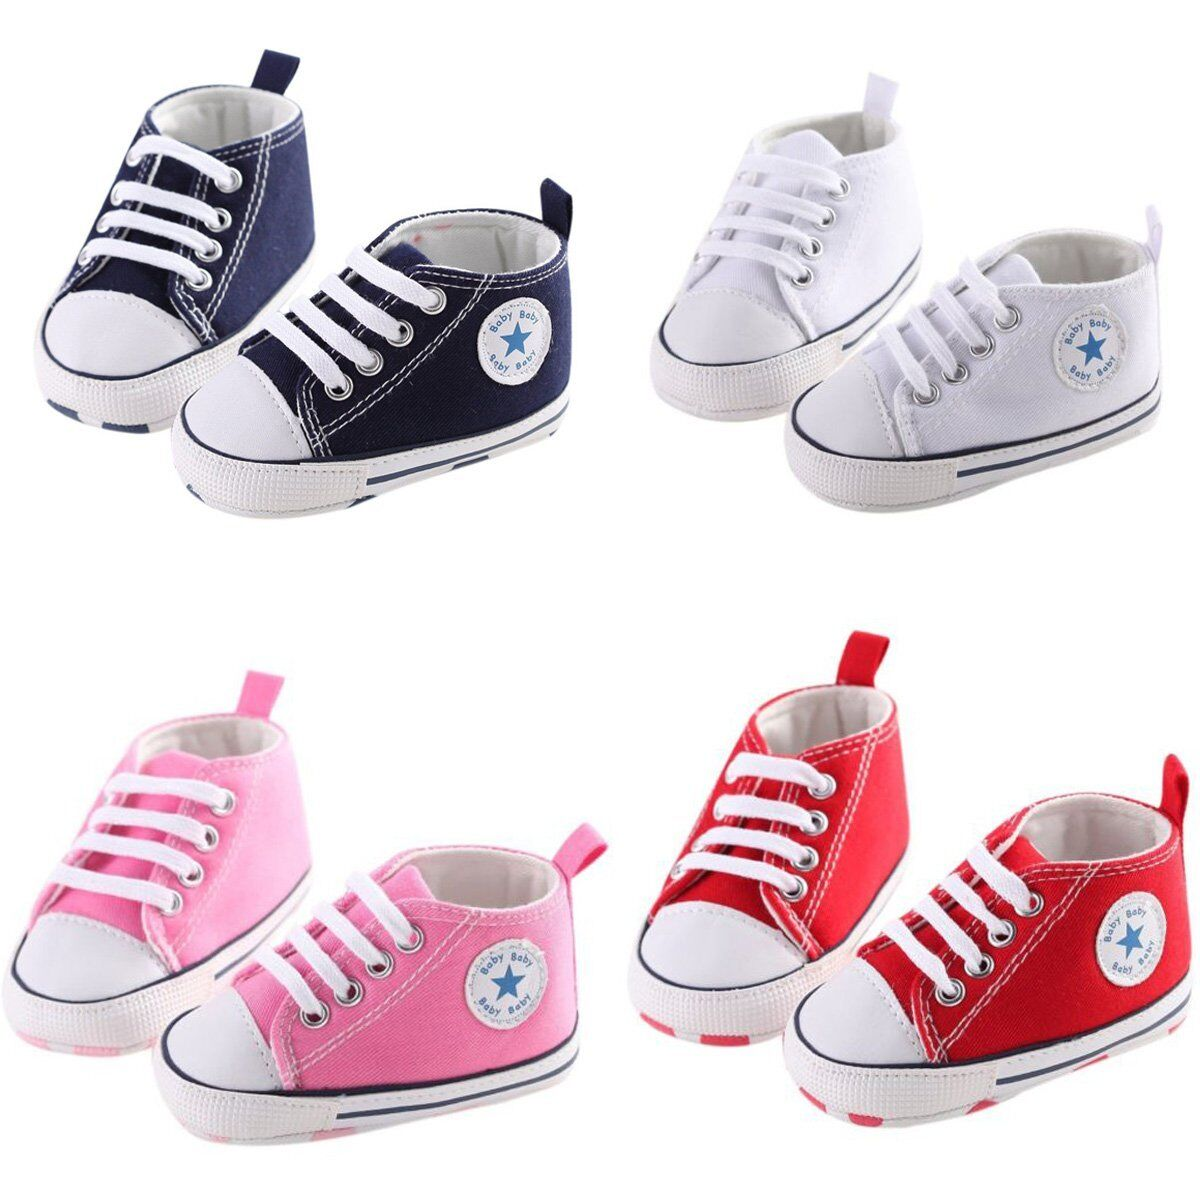 Cute Red Baby Boy Sneakers Shoes Booties Boots Walking Shoes